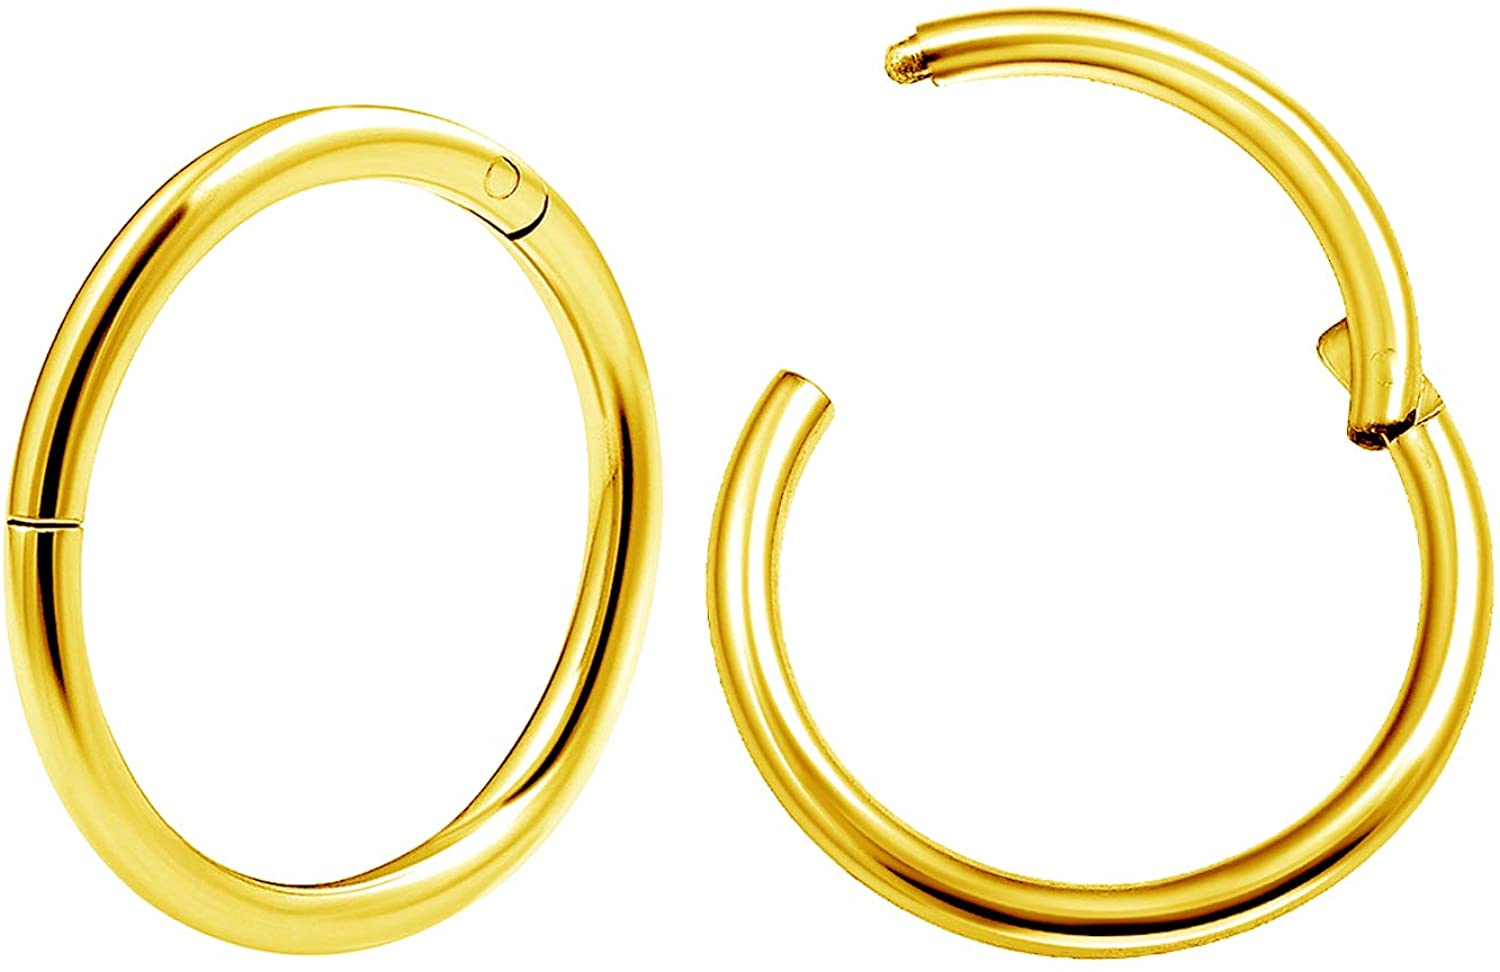 MATIGA 2Pcs Anodized Surgical Steel 16g Hinged Clicker Segment Piercing Jewelry Helix Septum Tragus Nose Cartilage More Choices